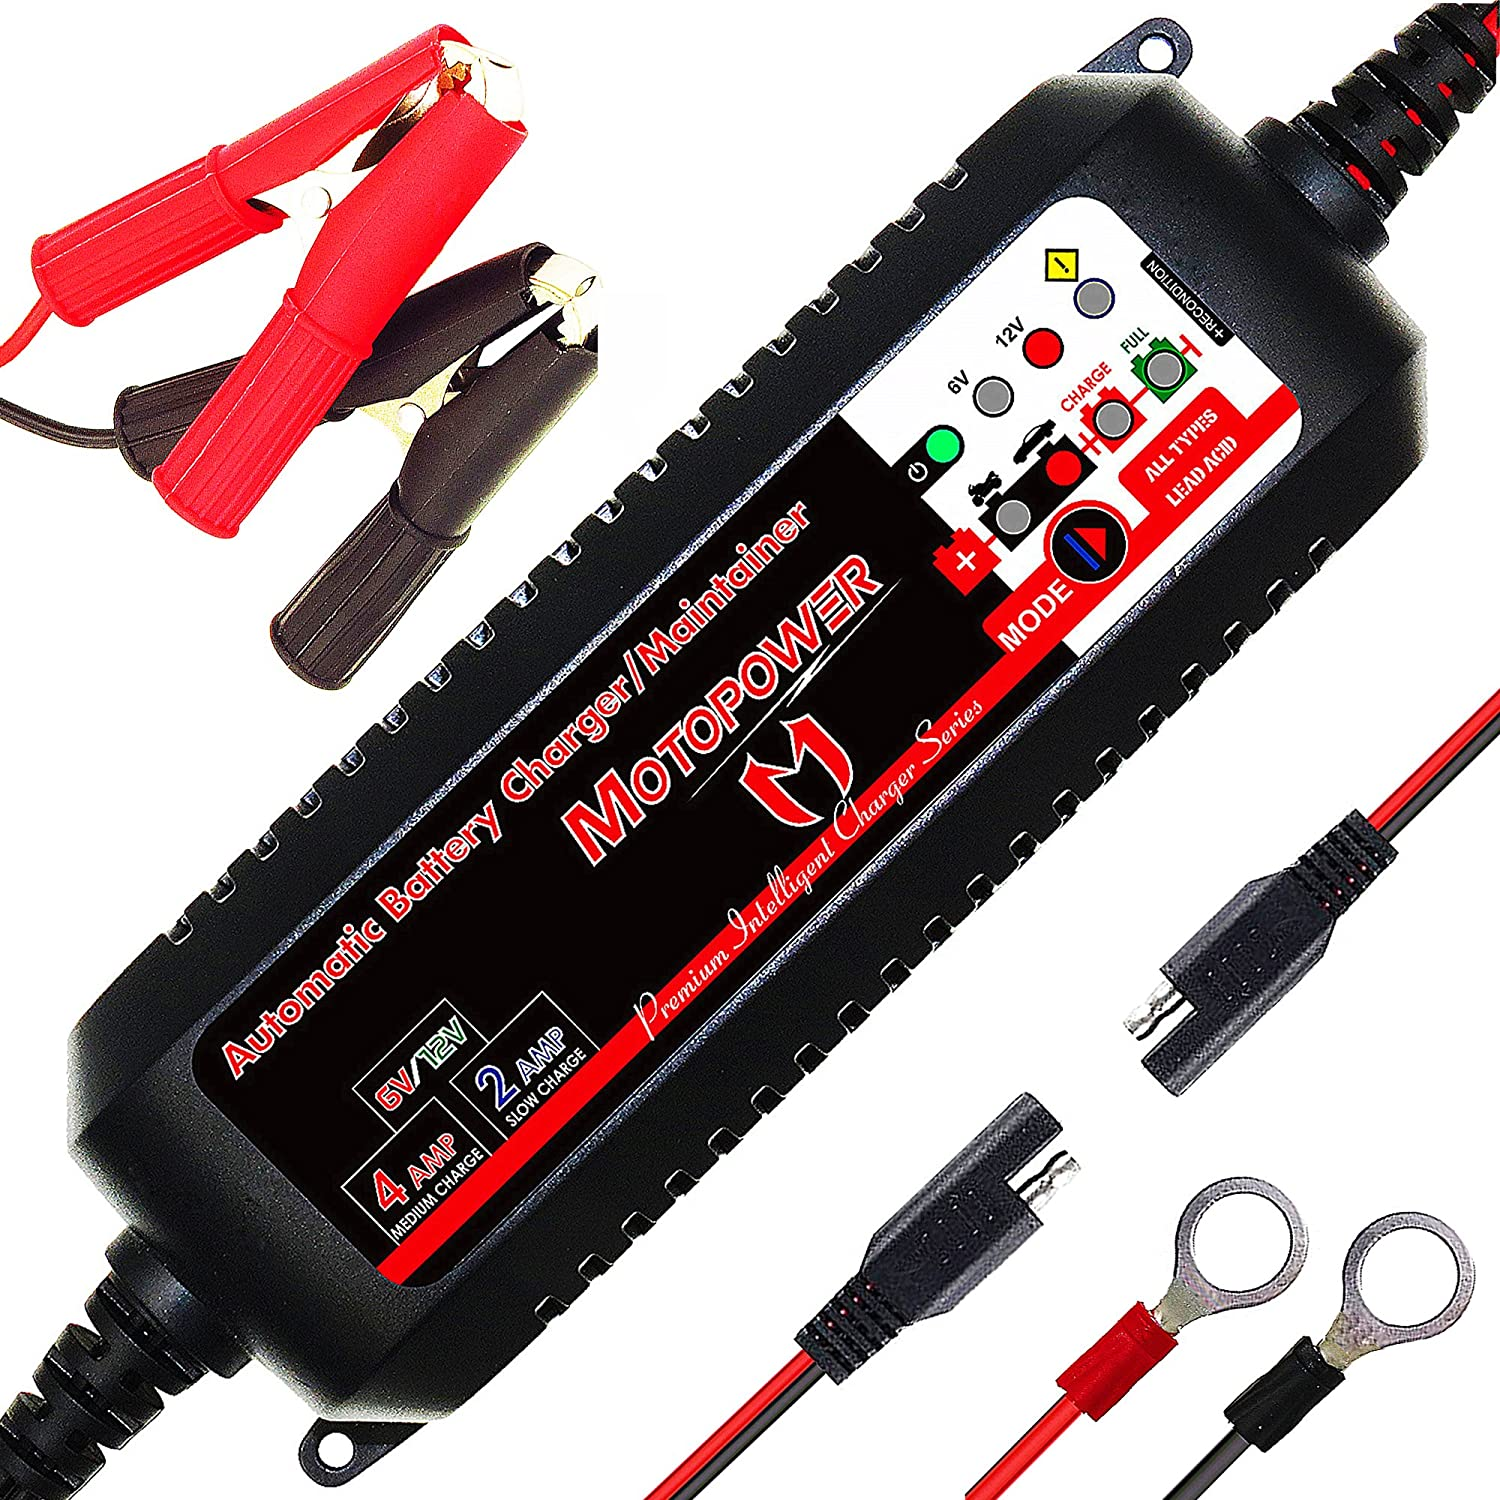 MOTOPOWER MP00207A 12V 2Amp Smart Automatic Battery Charger / Maintainer for Both Lead Acid Batteries and Lithium Ion Batteries